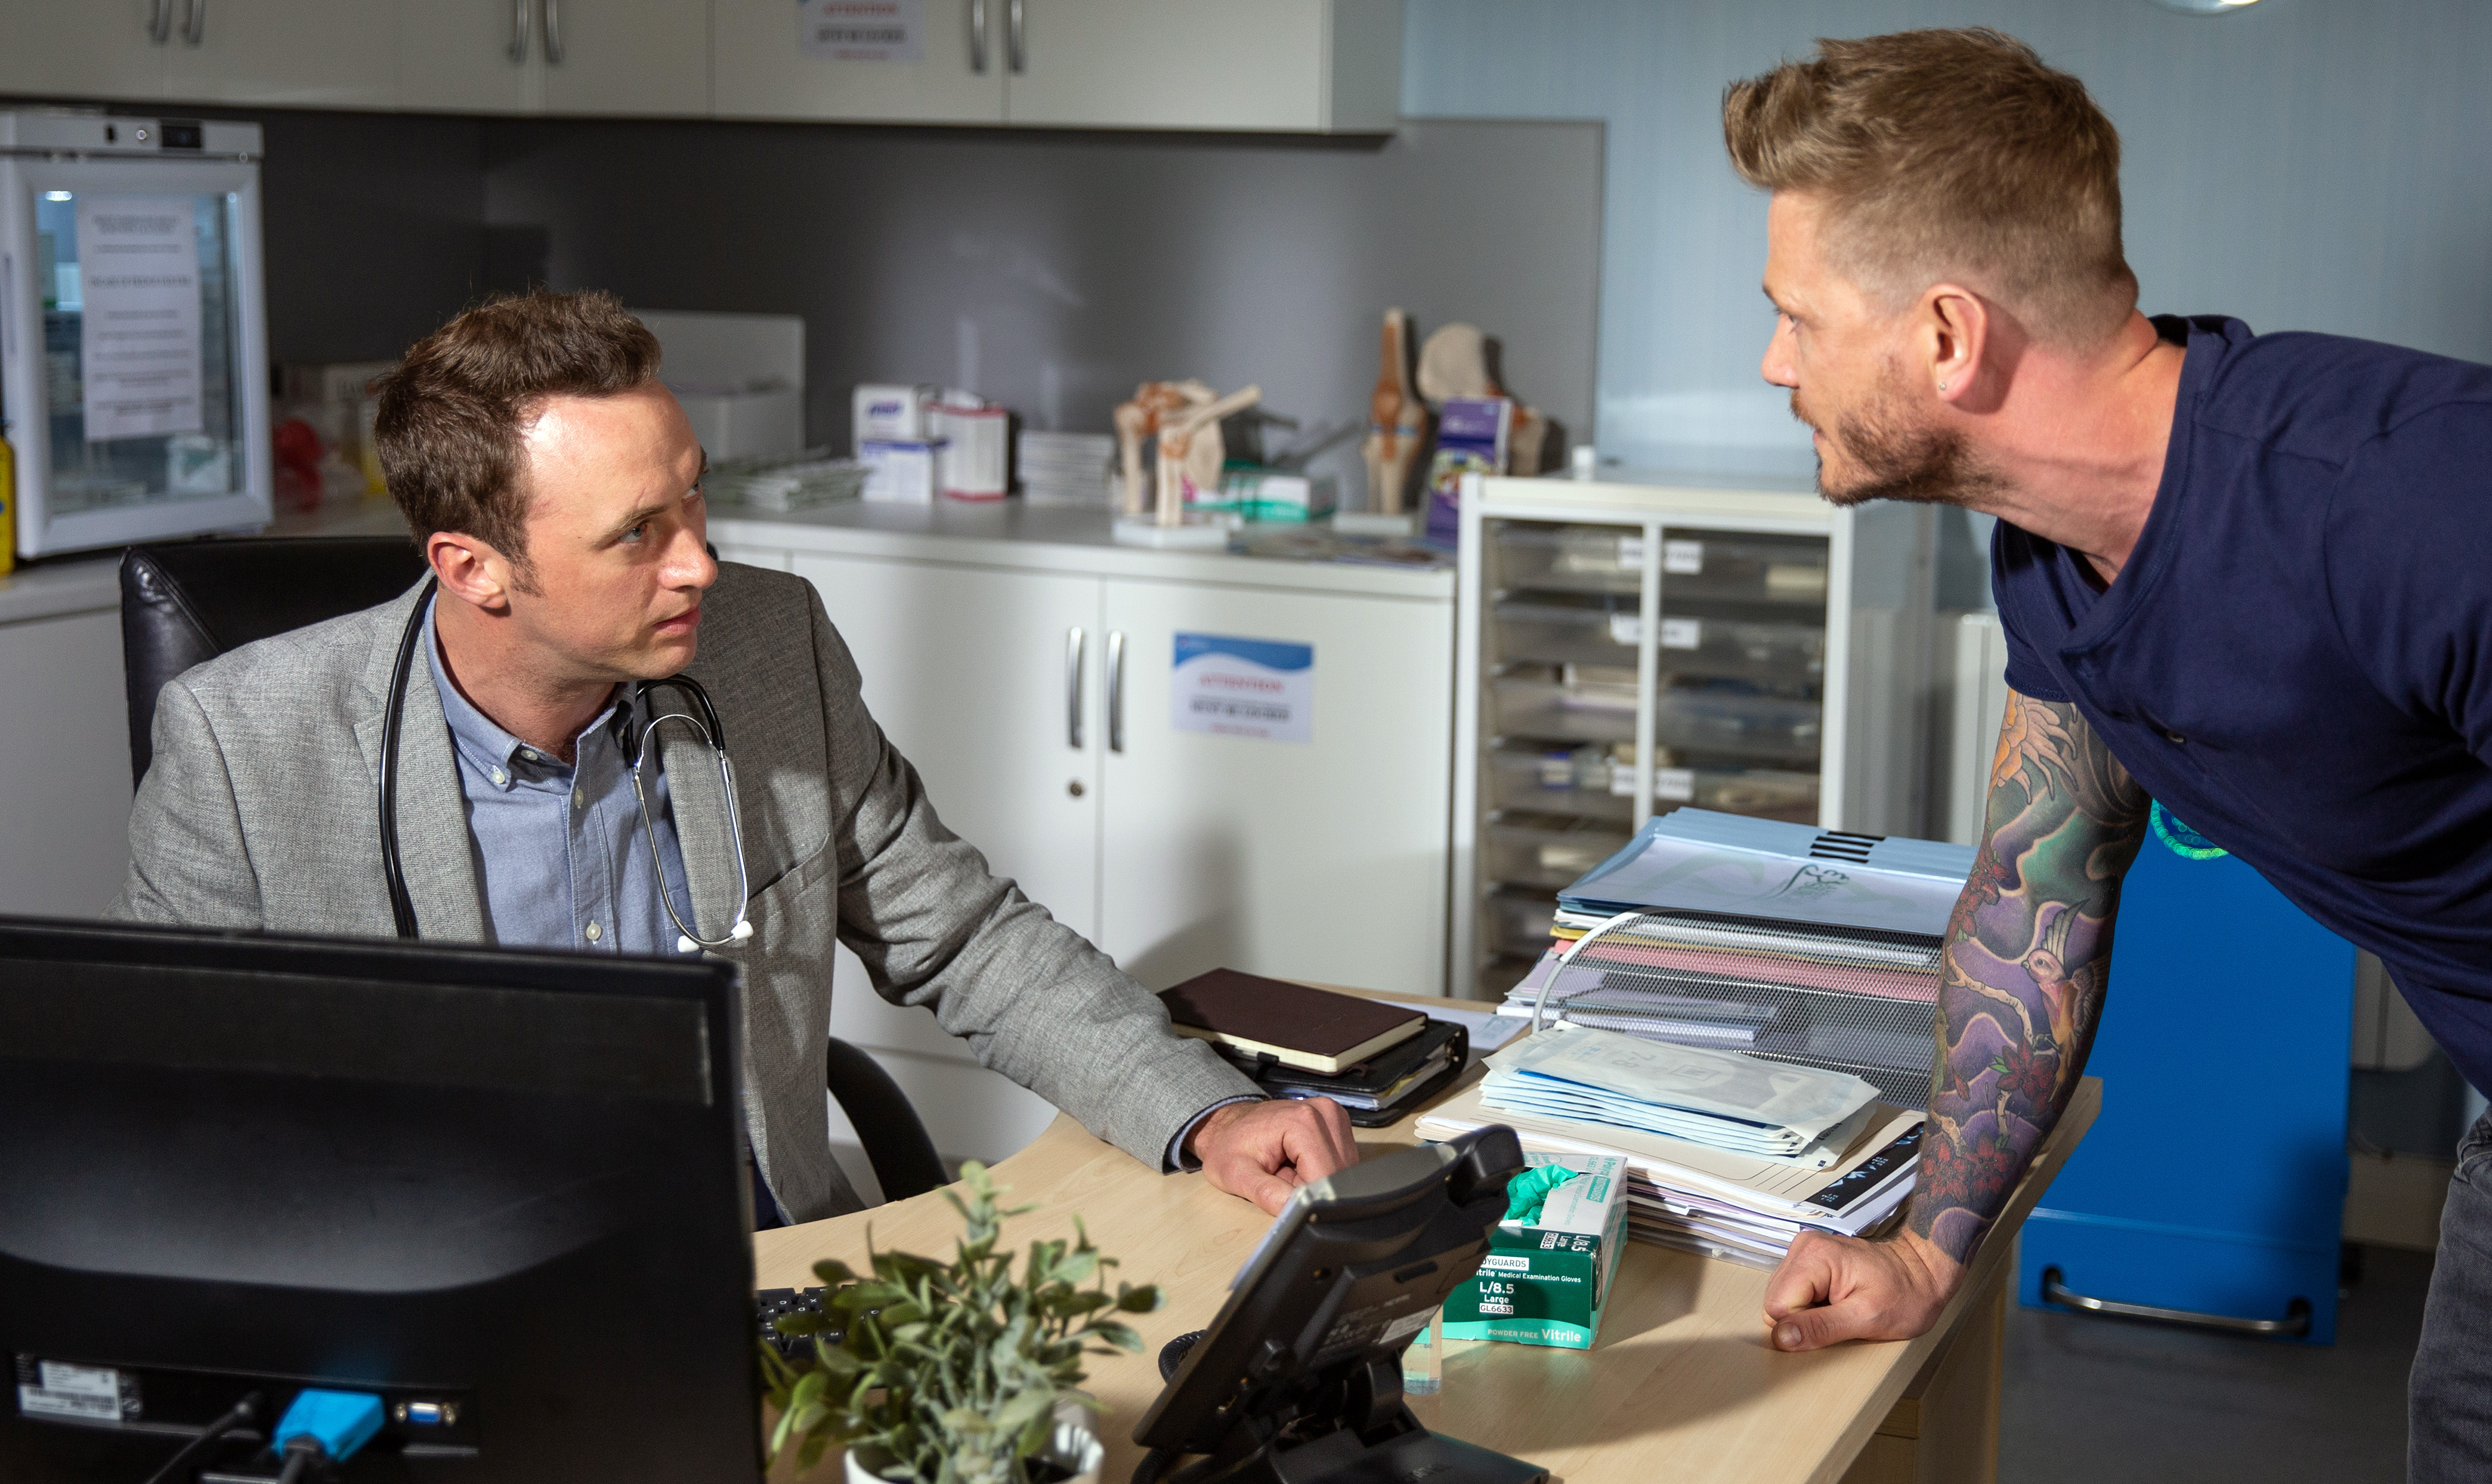 Emmerdale spoilers: David clashes with Maya's ex as Tracy reveals a secret